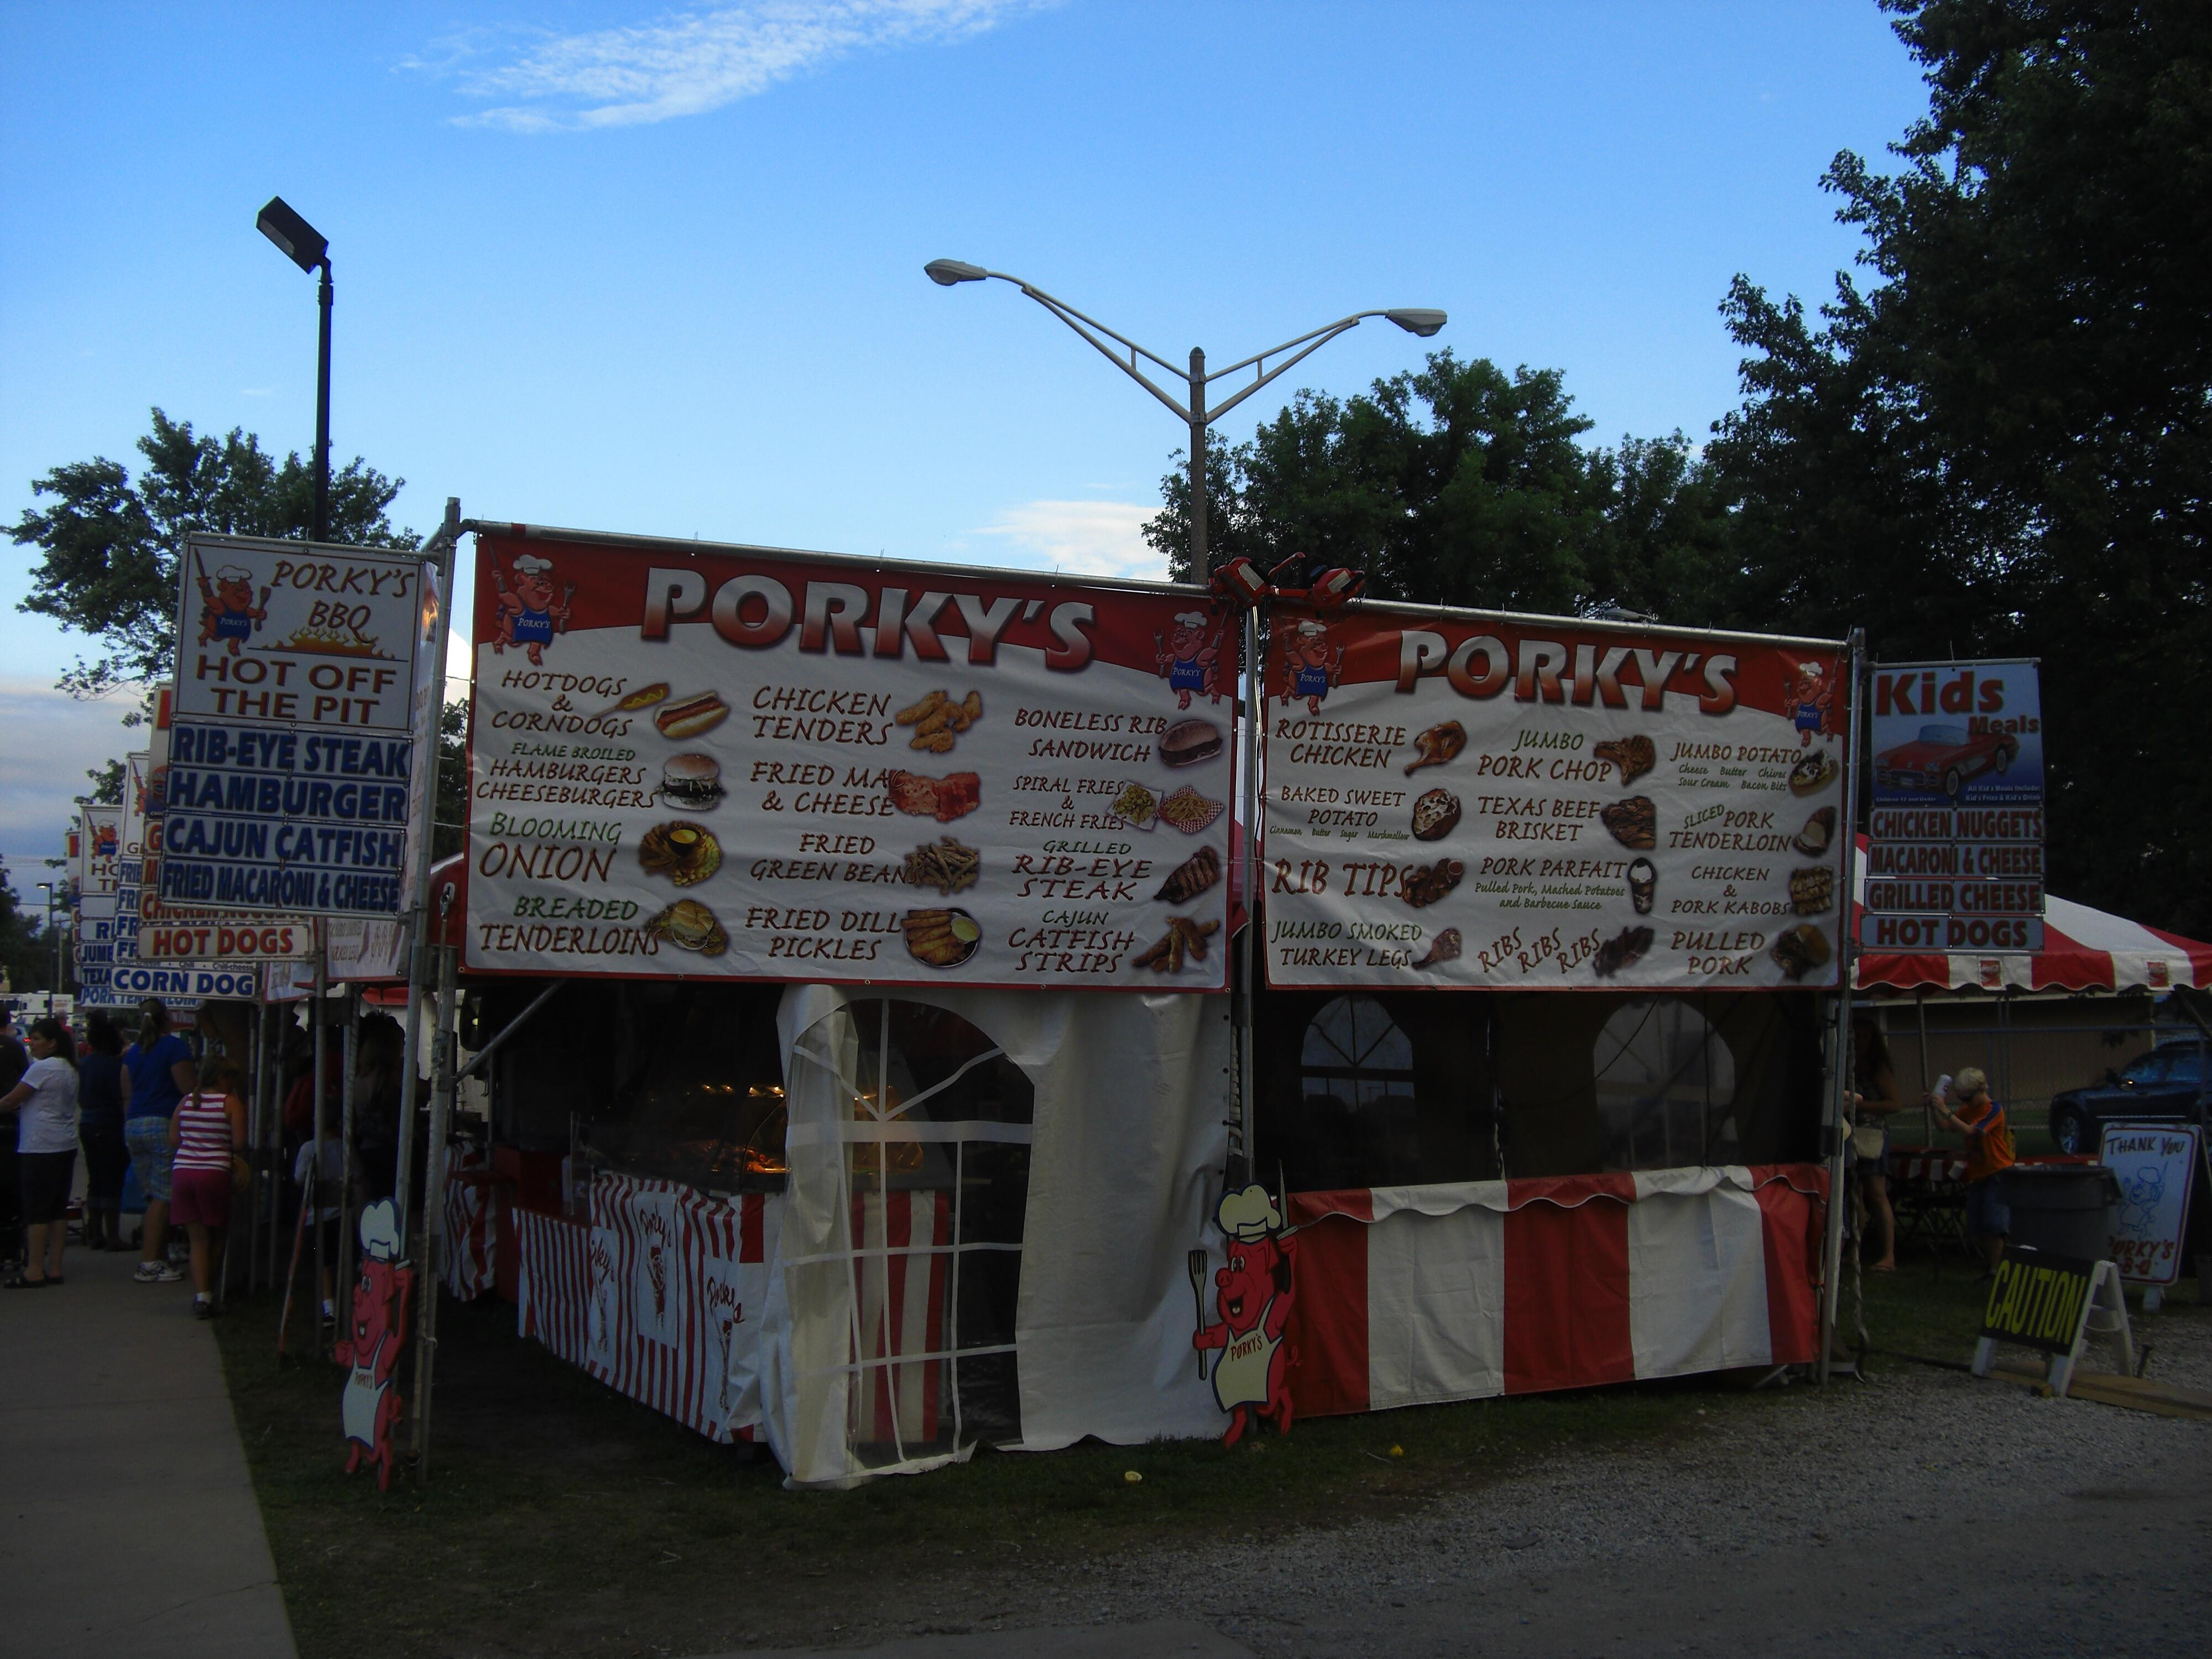 Porky's at the 2009 Illinois State Fair